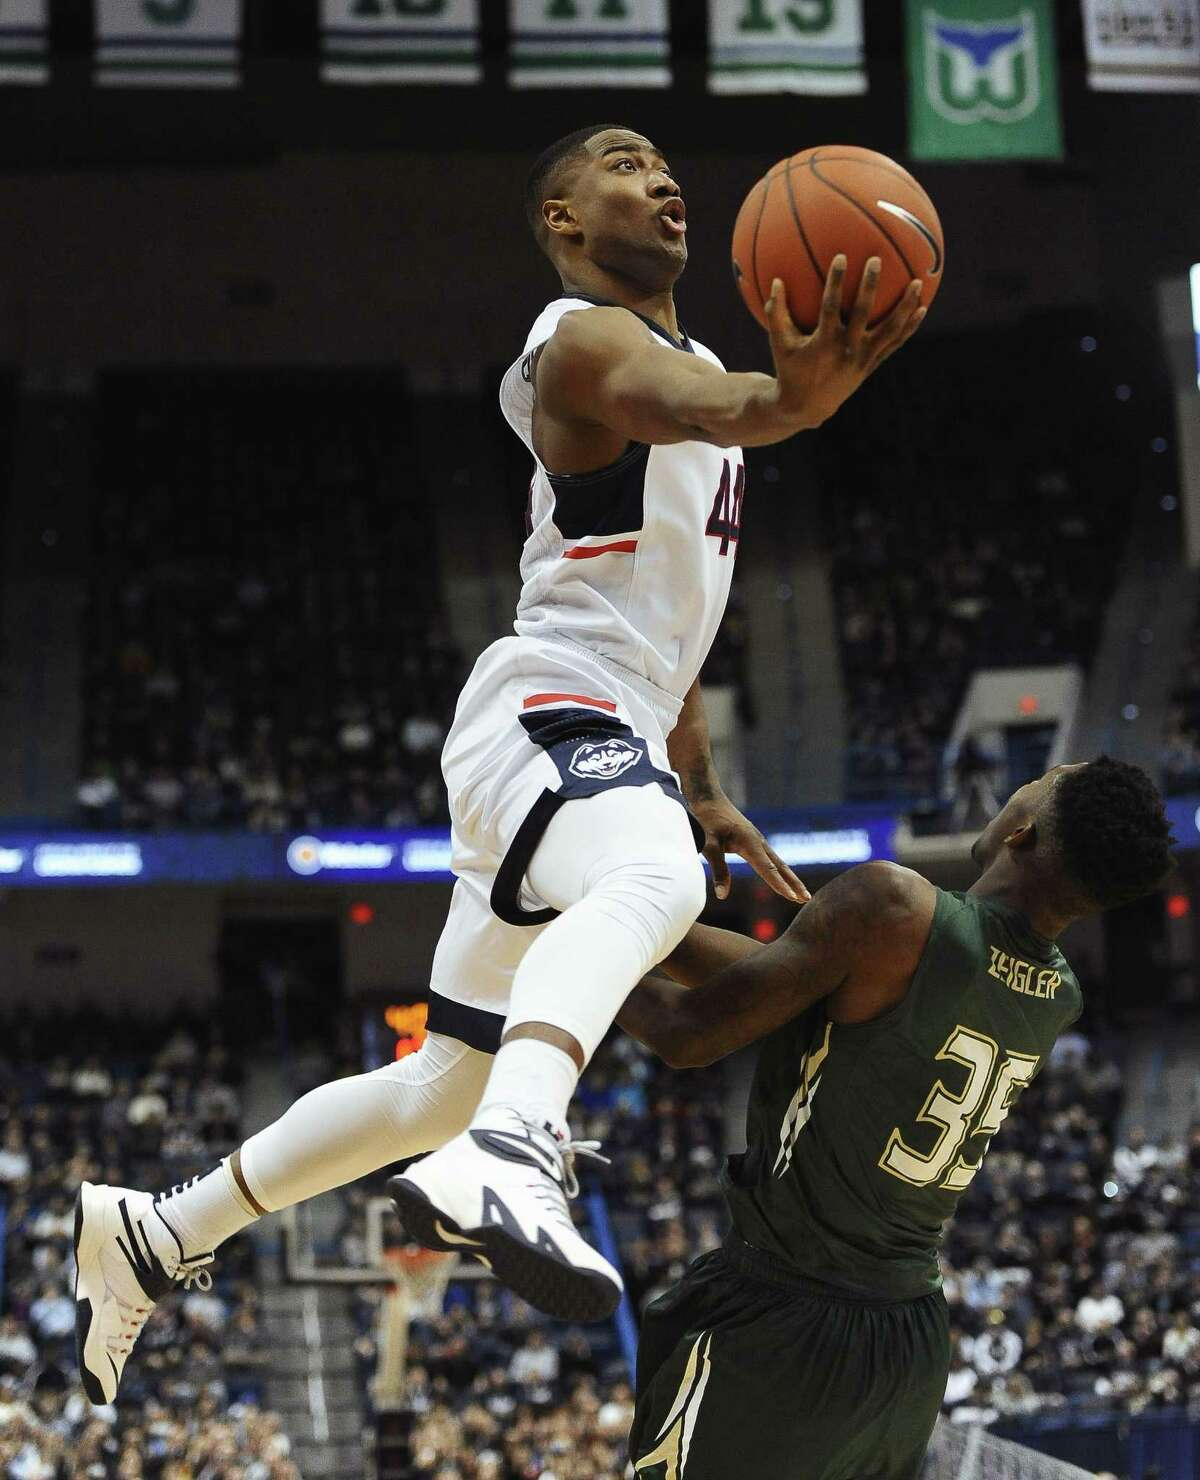 UConn's Rodney Purvis, left, shoots over South Florida's Bo Zeigler during the first half Sunday.